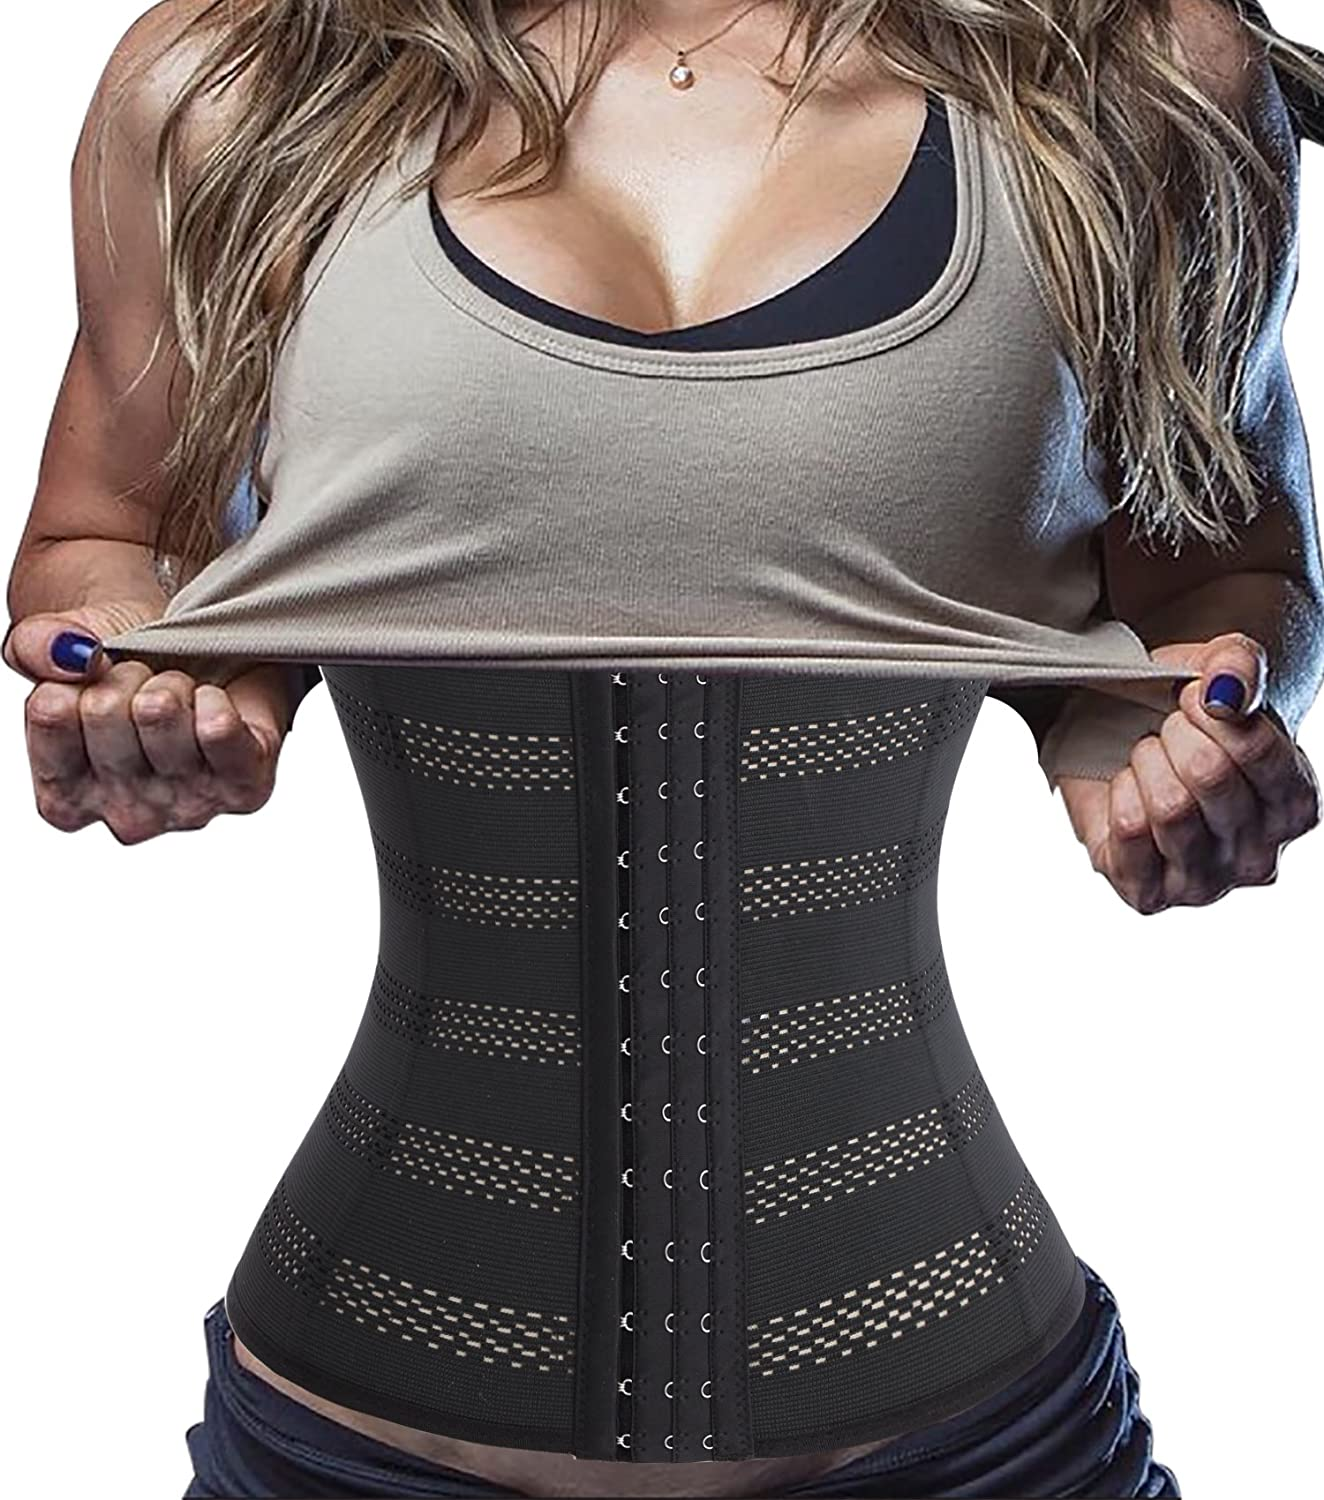 Adjustable Waist Trainer Corset Girdle Invisible Body Shapewear Tummy Control Workout Sport